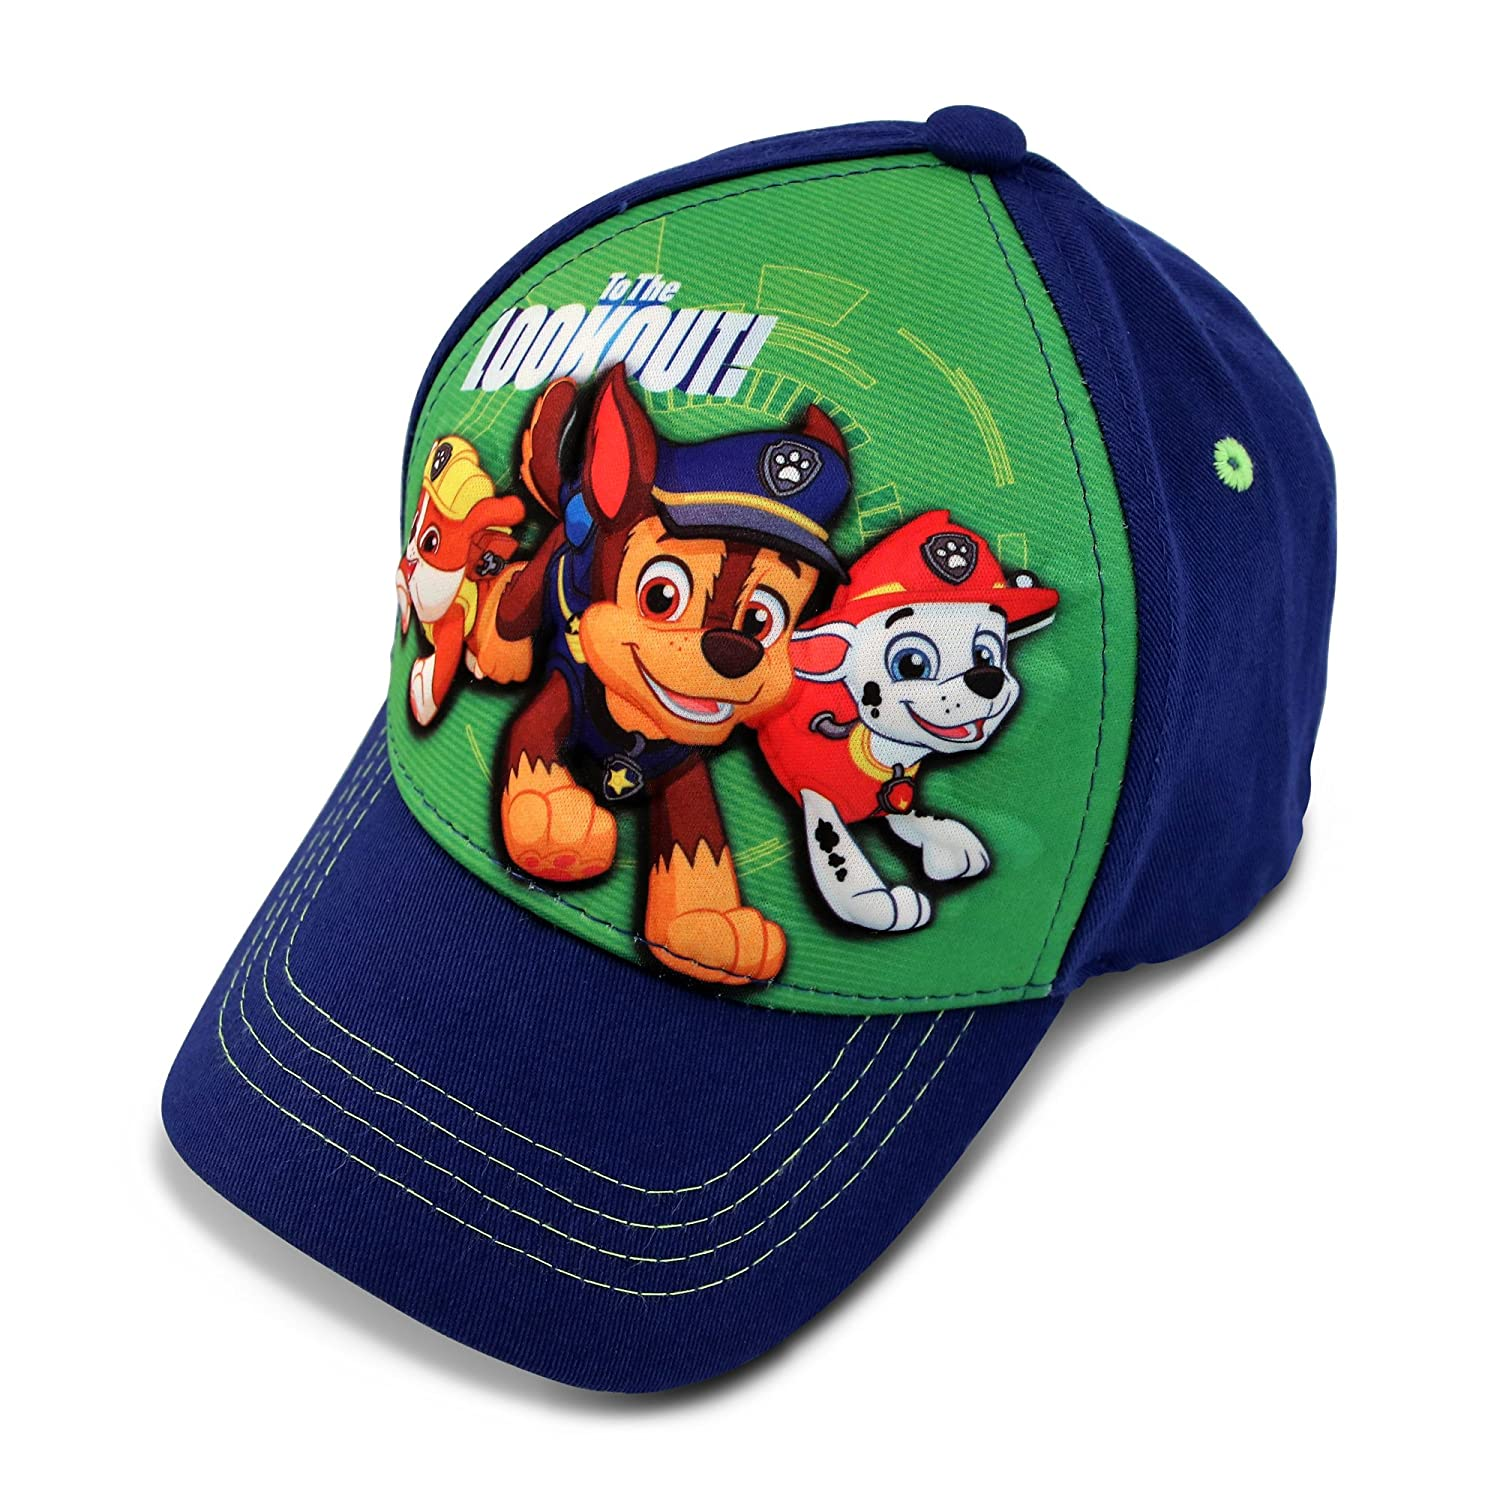 Nickelodeon Paw Patrol Boys Cap with 3D Pop Design Blue/Green Age 2-4 PAS70593ST